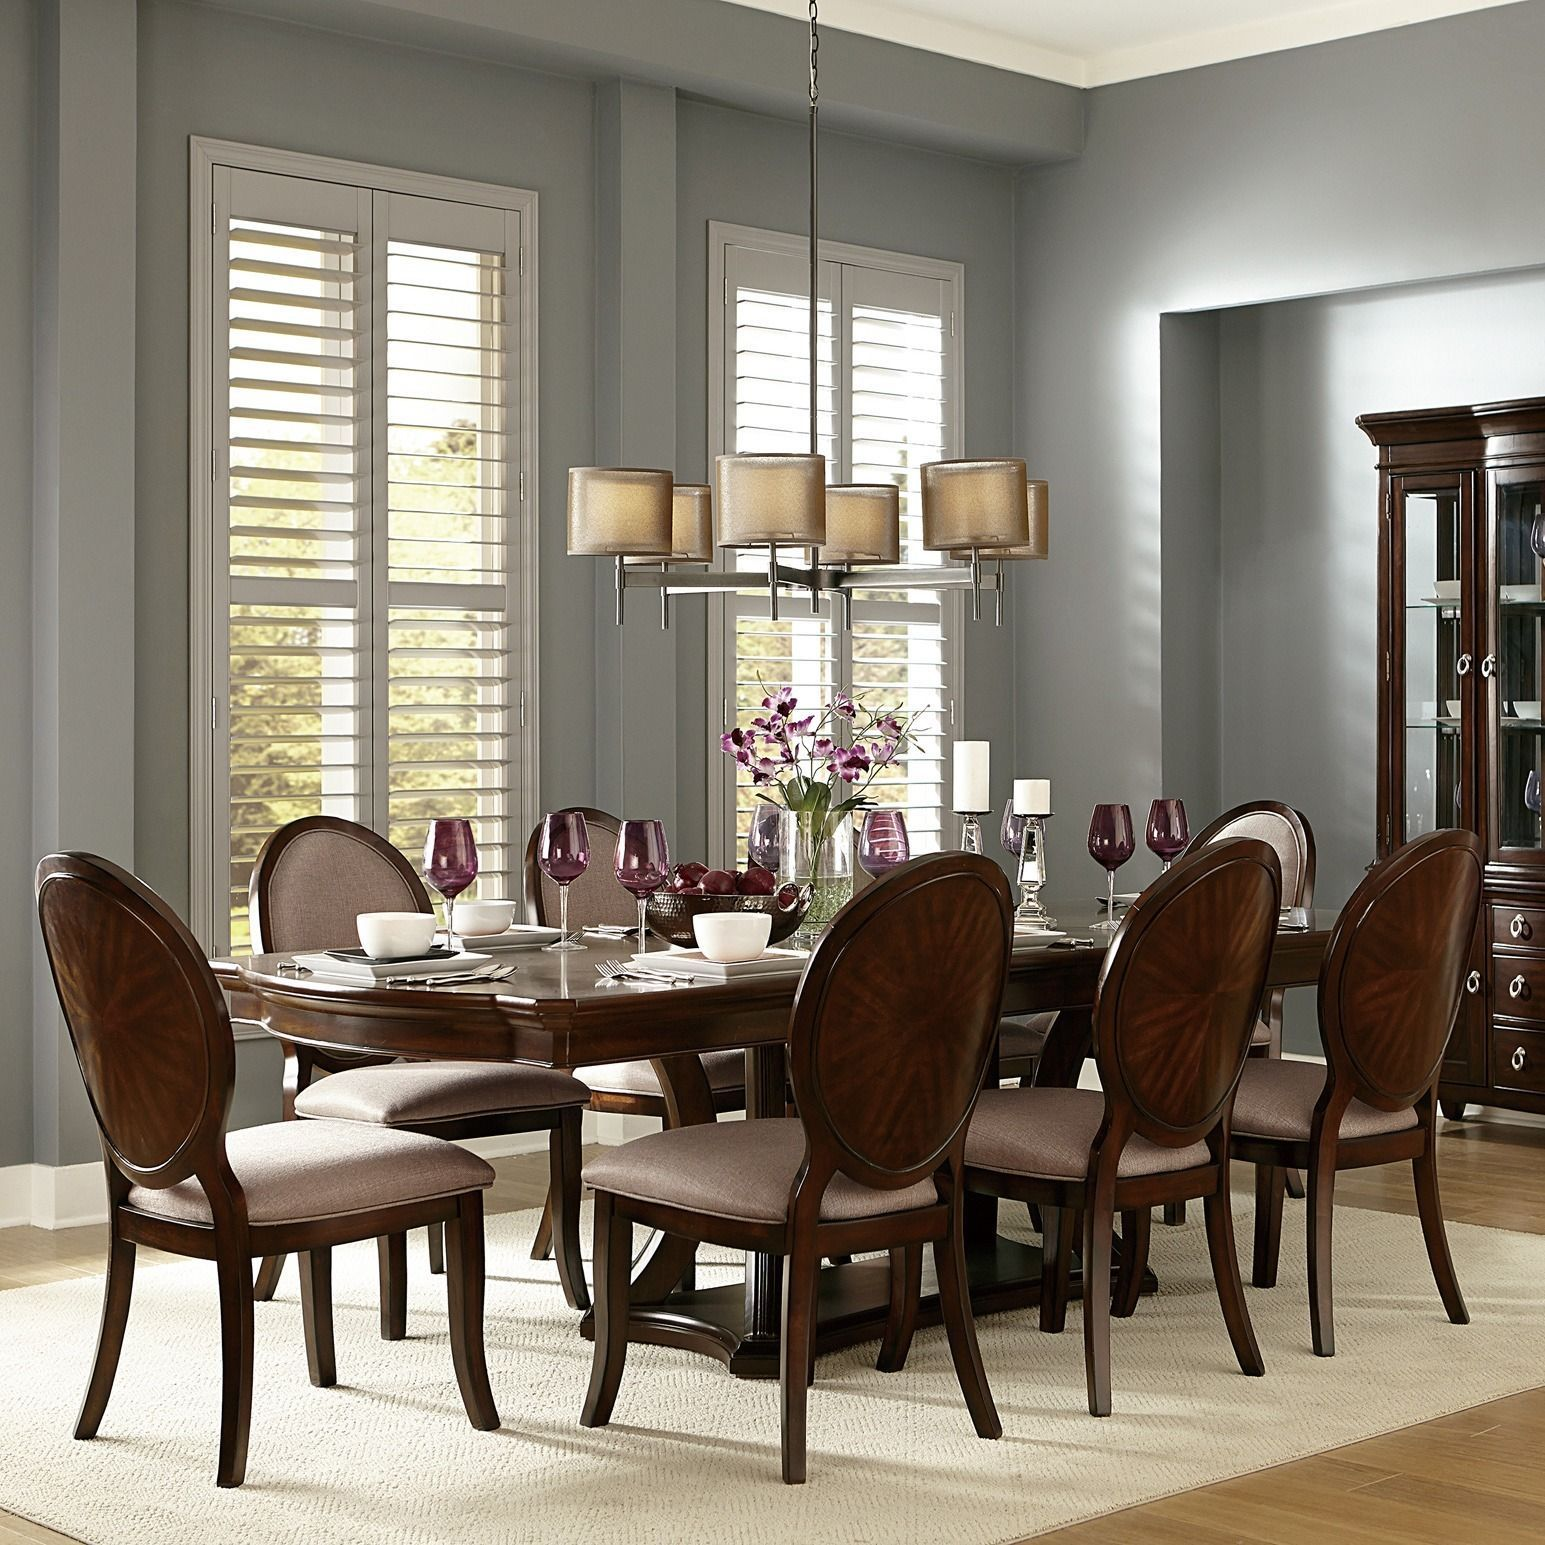 Verdiana Rich Brown Cherry Finish Extending Dining Set by ...